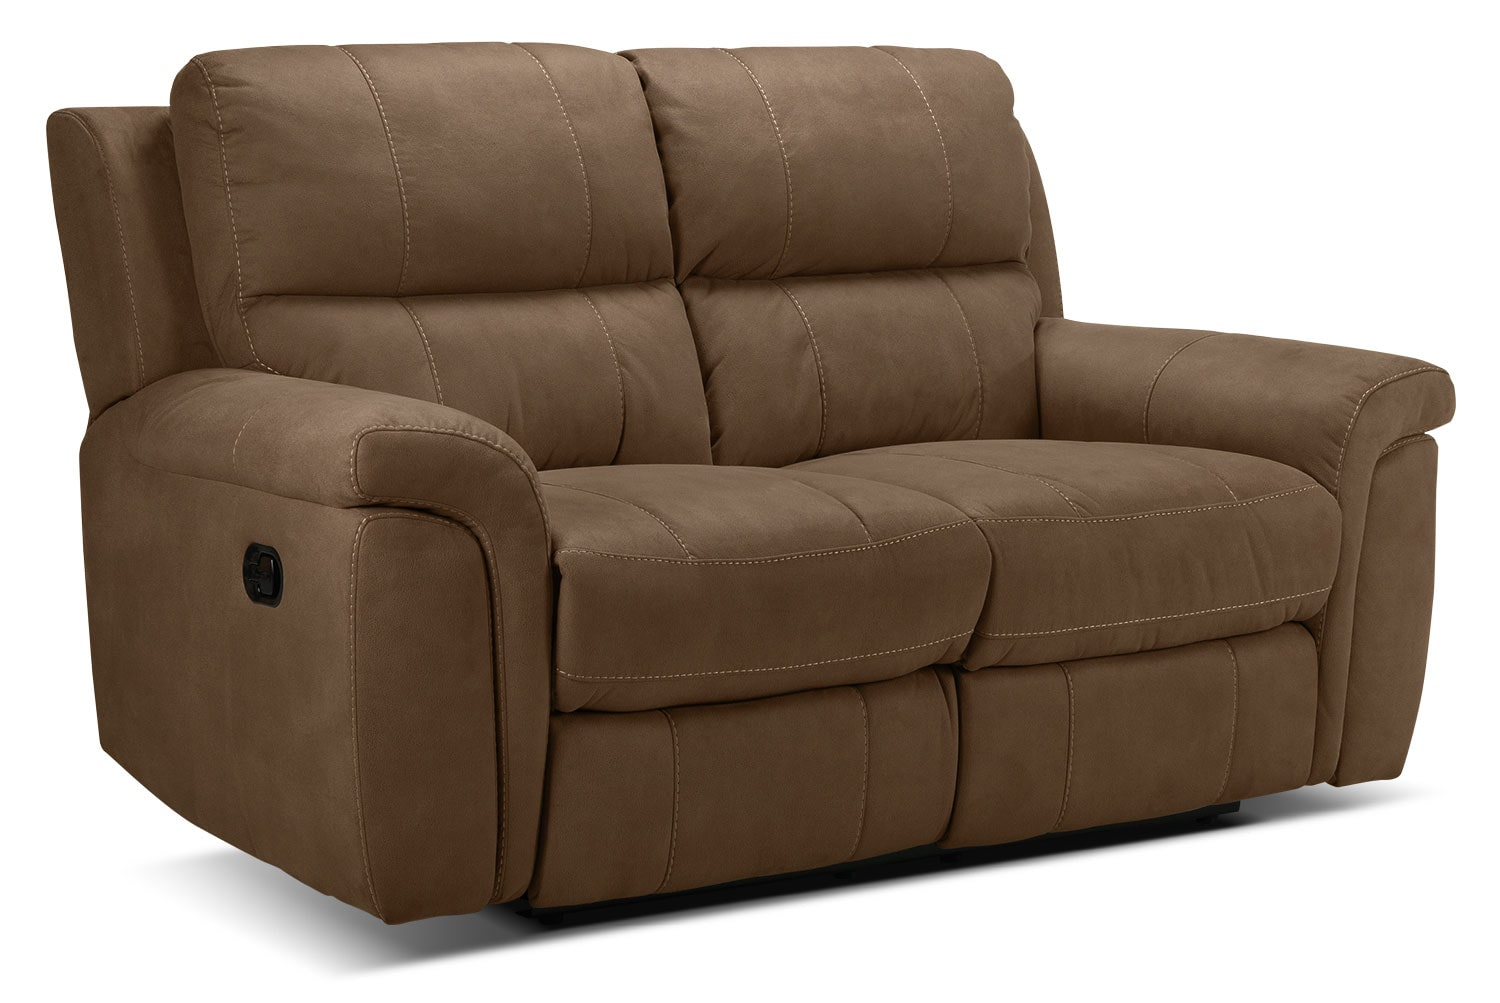 Roarke Reclining Loveseat - Tobacco